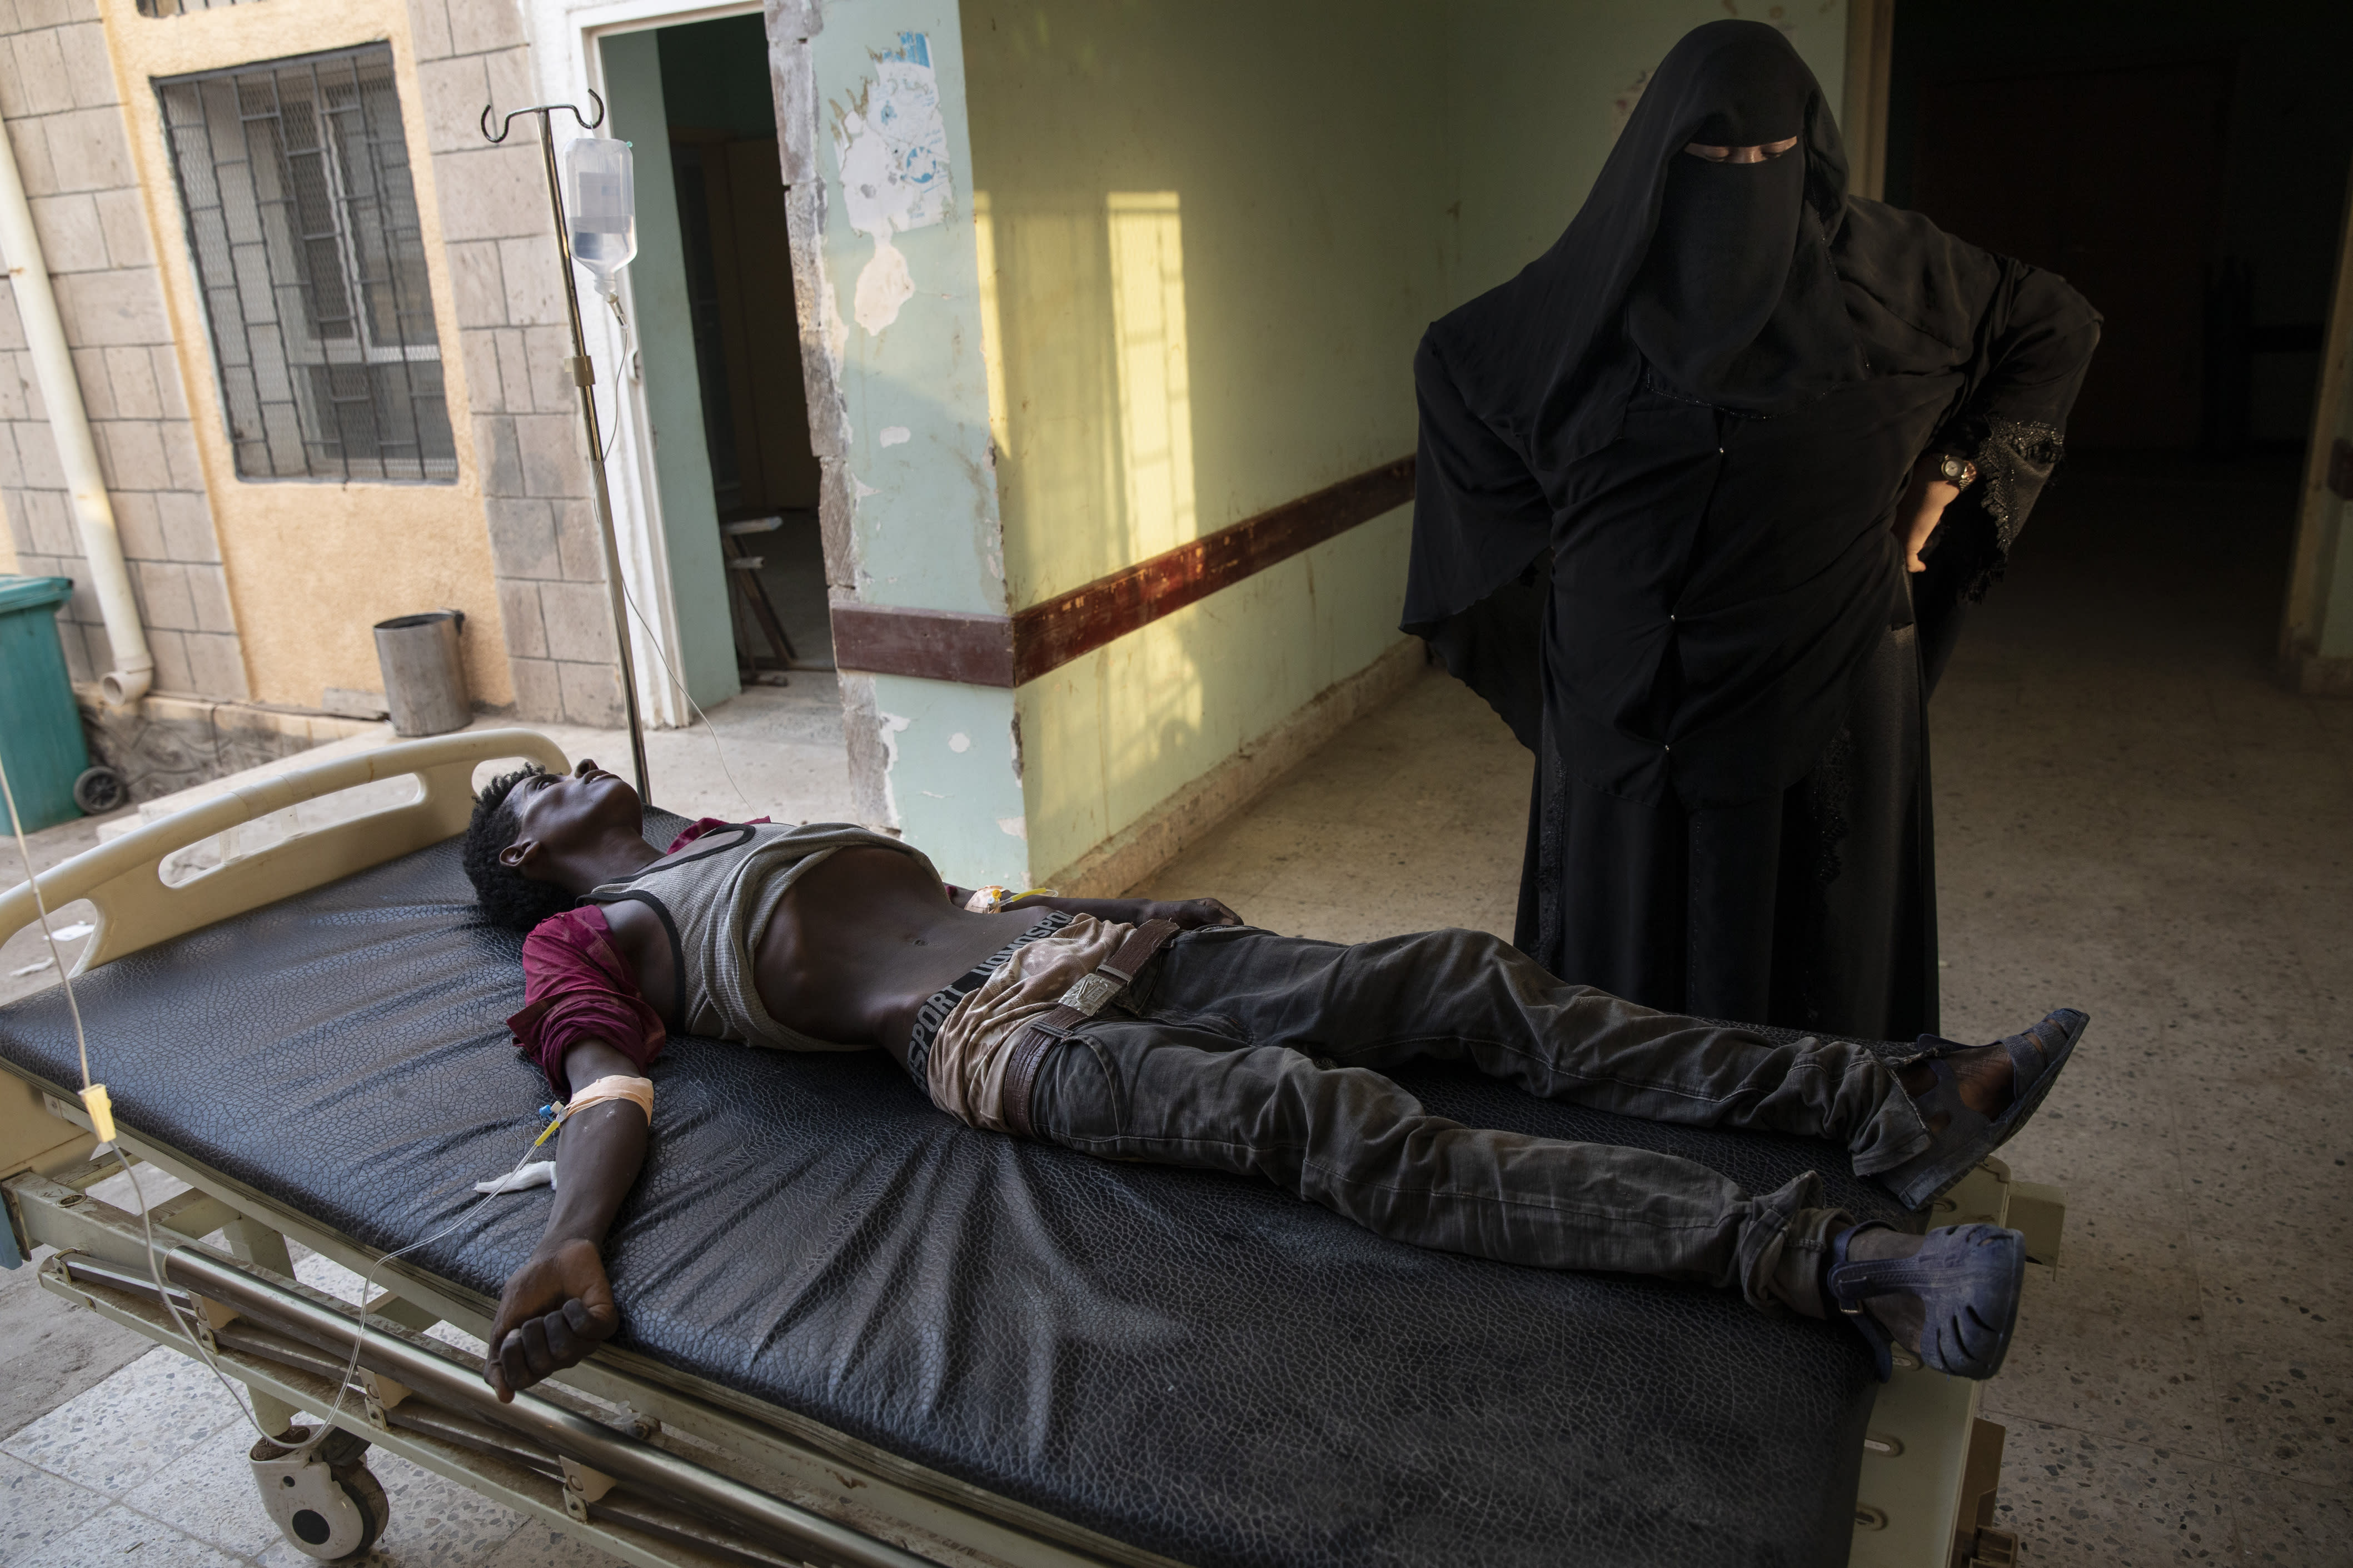 In this Aug. 1, 2019 photo, an Ethiopian Tigray migrant who was imprisoned by traffickers for months, lies on a gurney accompanied by a nurse at the Ras al-Ara Hospital in Lahj, Yemen. Nurses gave him fluids but he died several hours later. (AP Photo/Nariman El-Mofty)